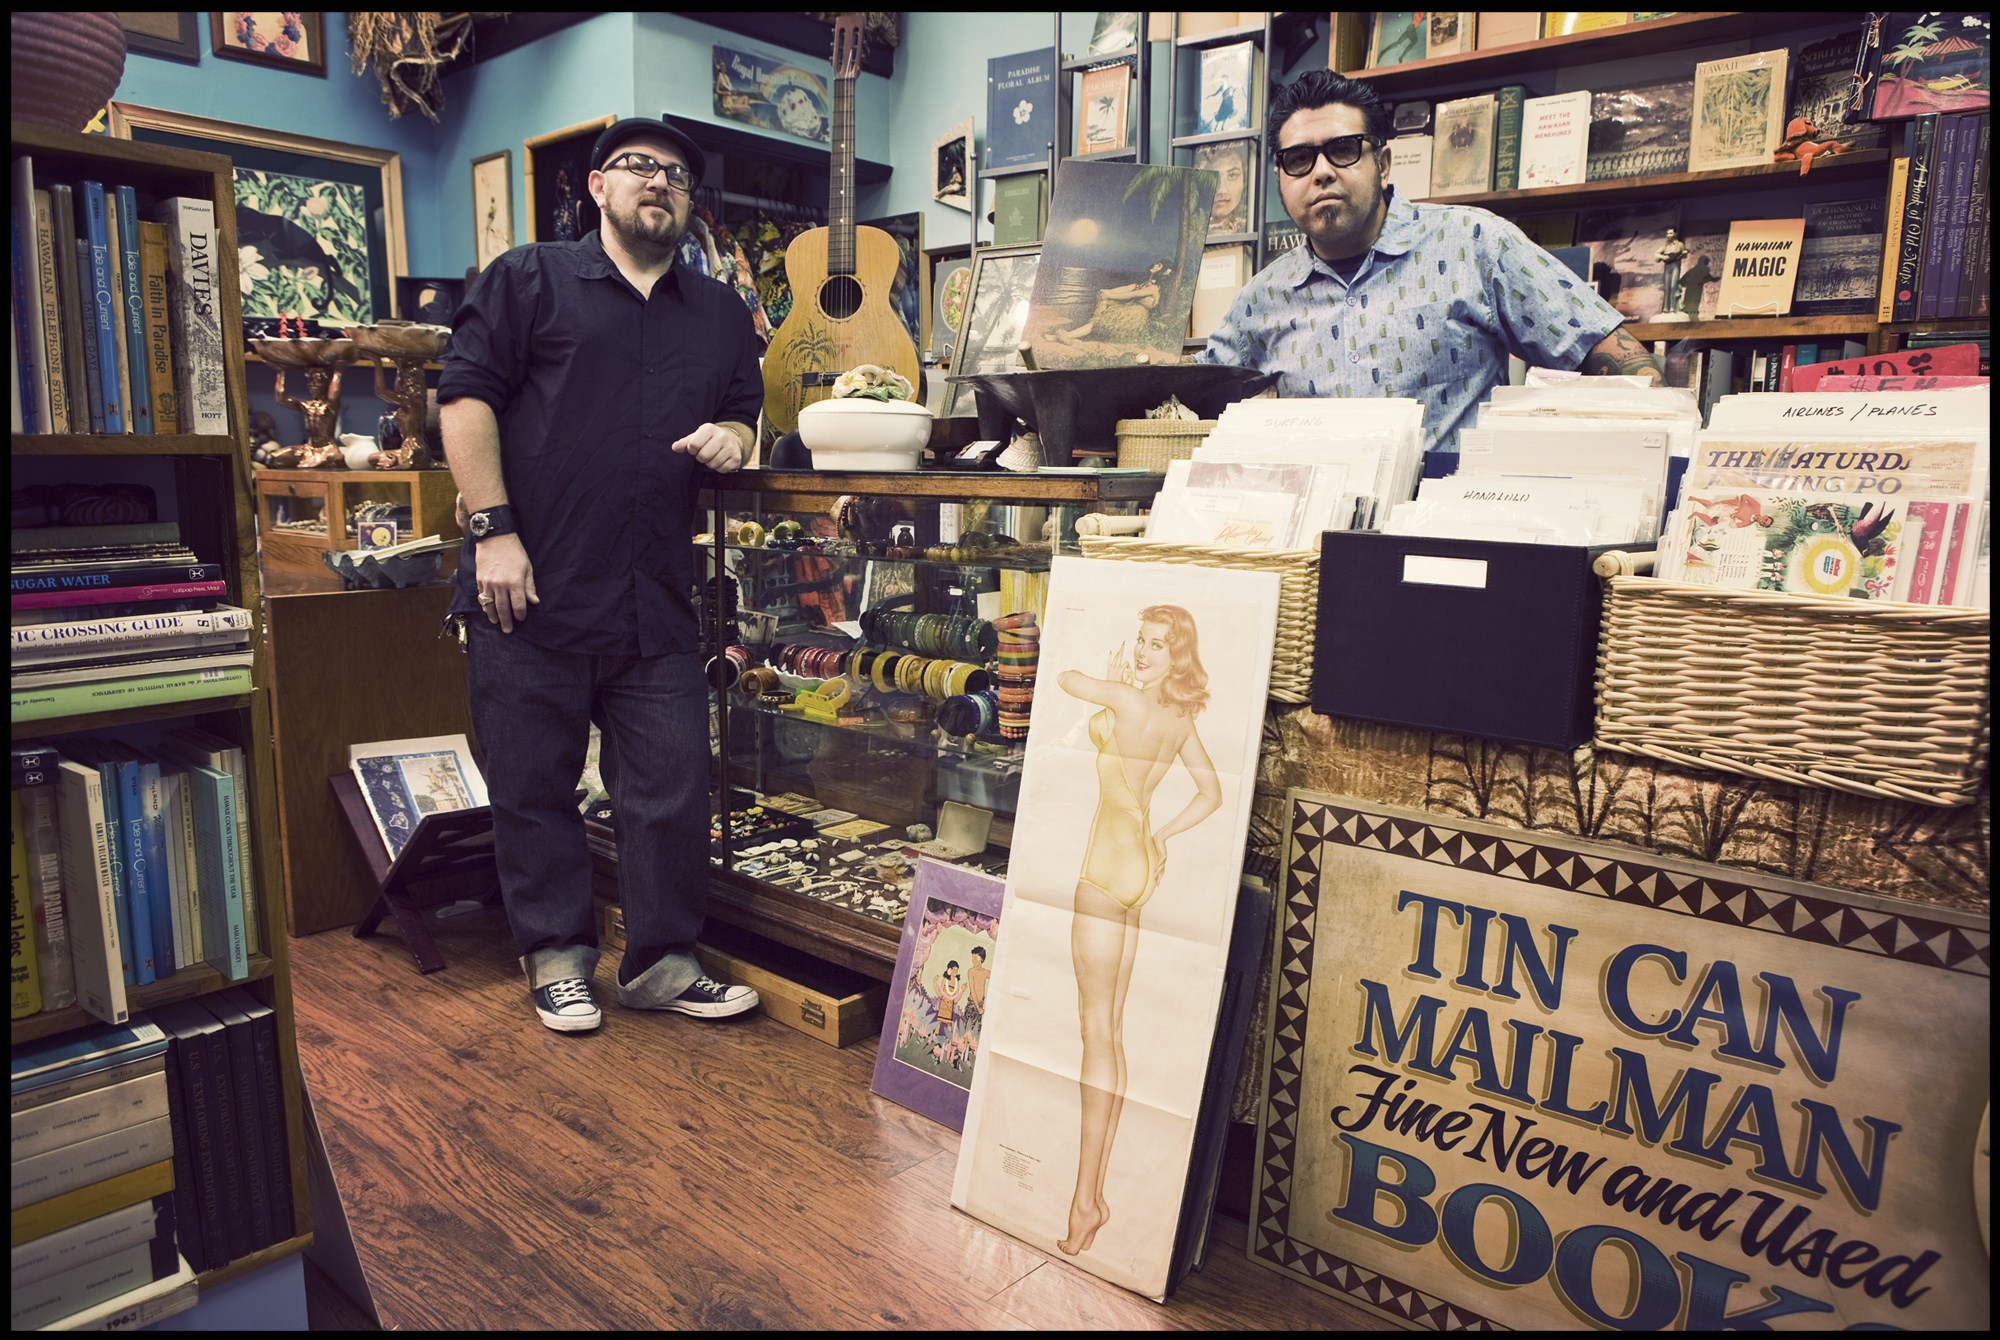 Christopher Oswalt and Raul Sanchez at their vintage shop, Tin Can mailman in Honolulu.